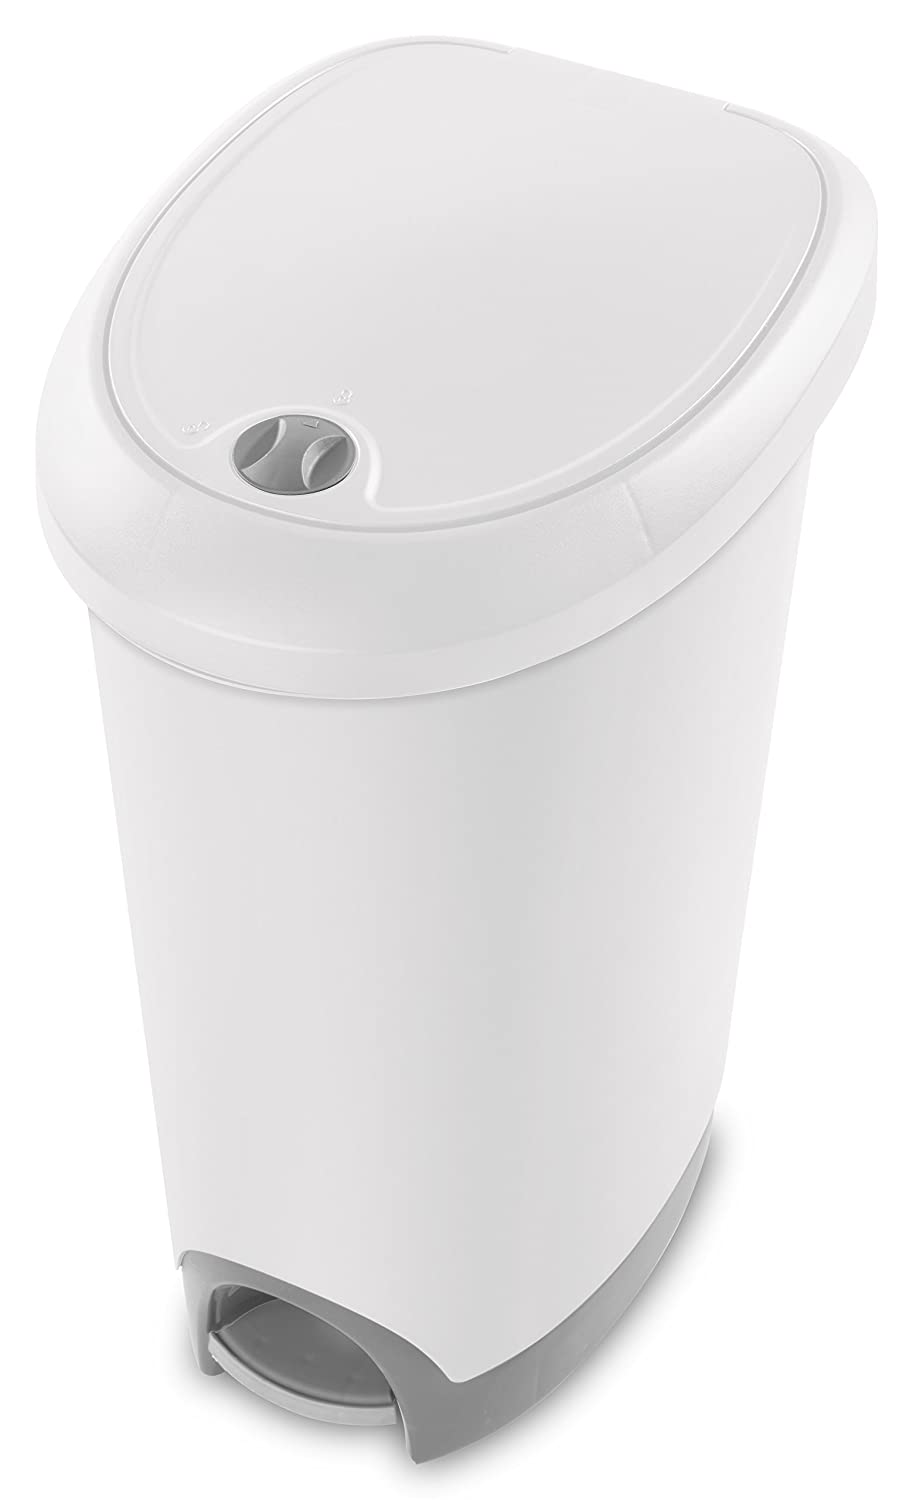 Amazon.com: STERILITE 10738002 12.6 Gallon Locking StepOn ...